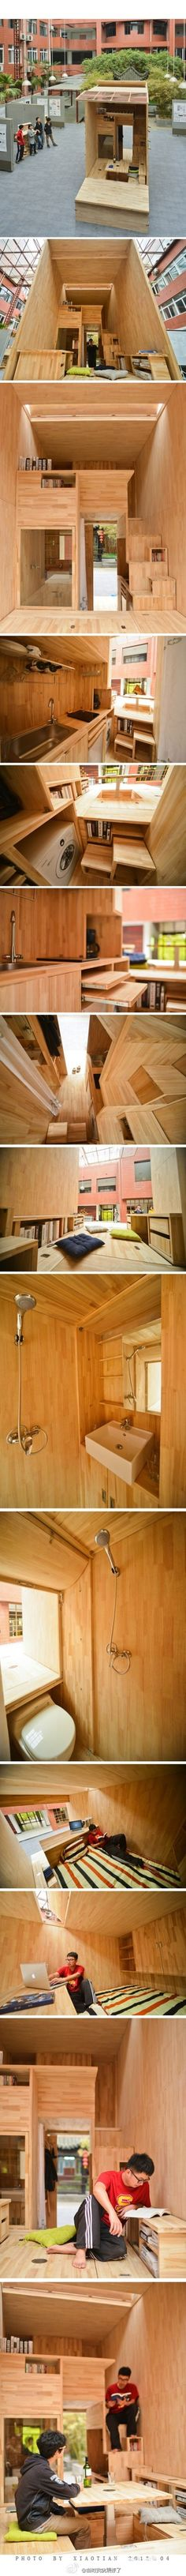 Student designed this AMAZING 75 sf apt. Includes bathroom kitchen shower and patio! - To connect with us, and our community of people from Australia and around the world, learning how to live large in small places, visit us at www.Facebook.com/TinyHousesAustralia